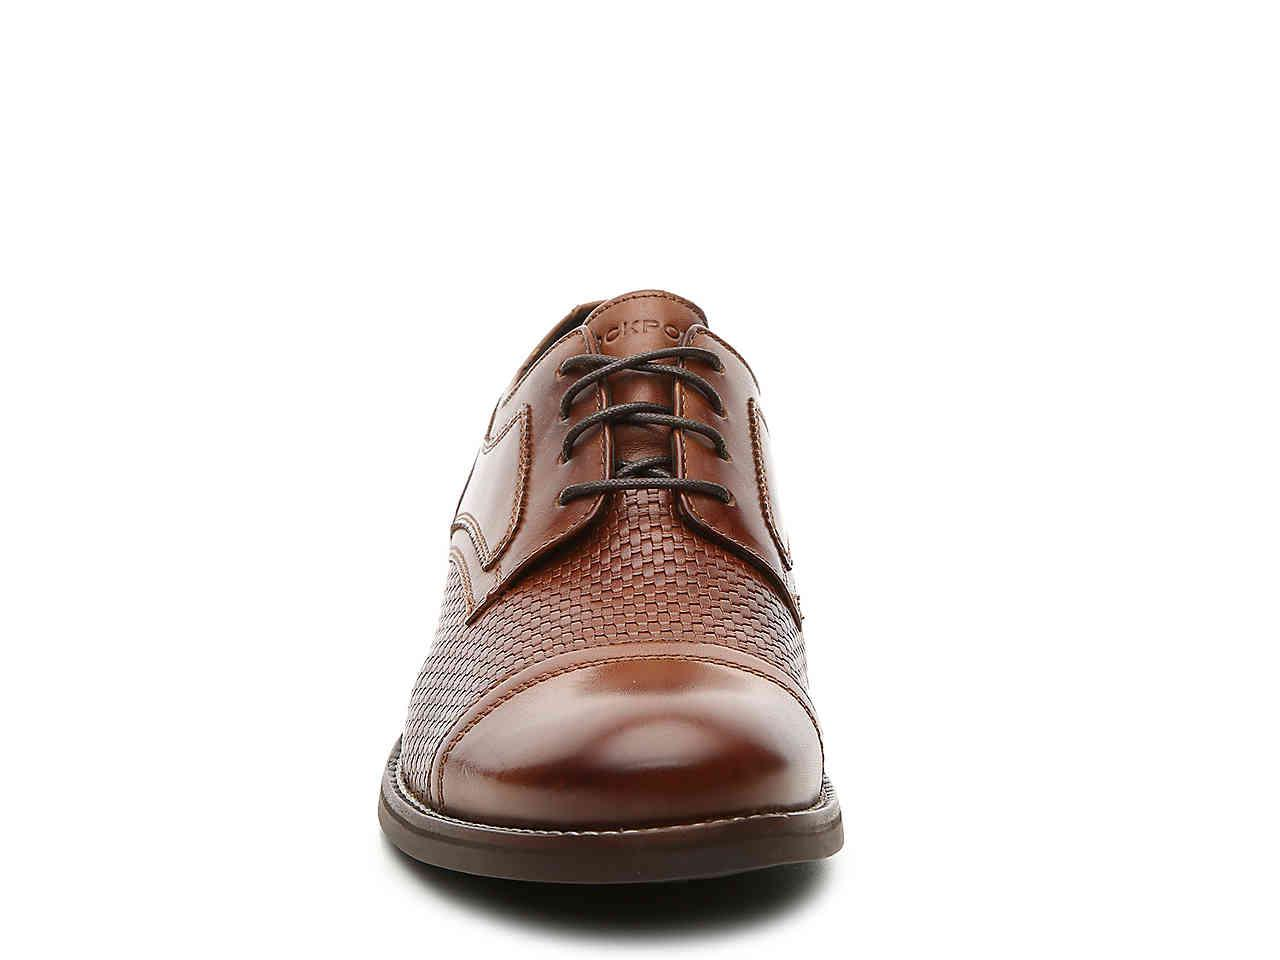 4c3745d2b9ef Lyst - Rockport Wyat Cap Toe Oxford in Brown for Men